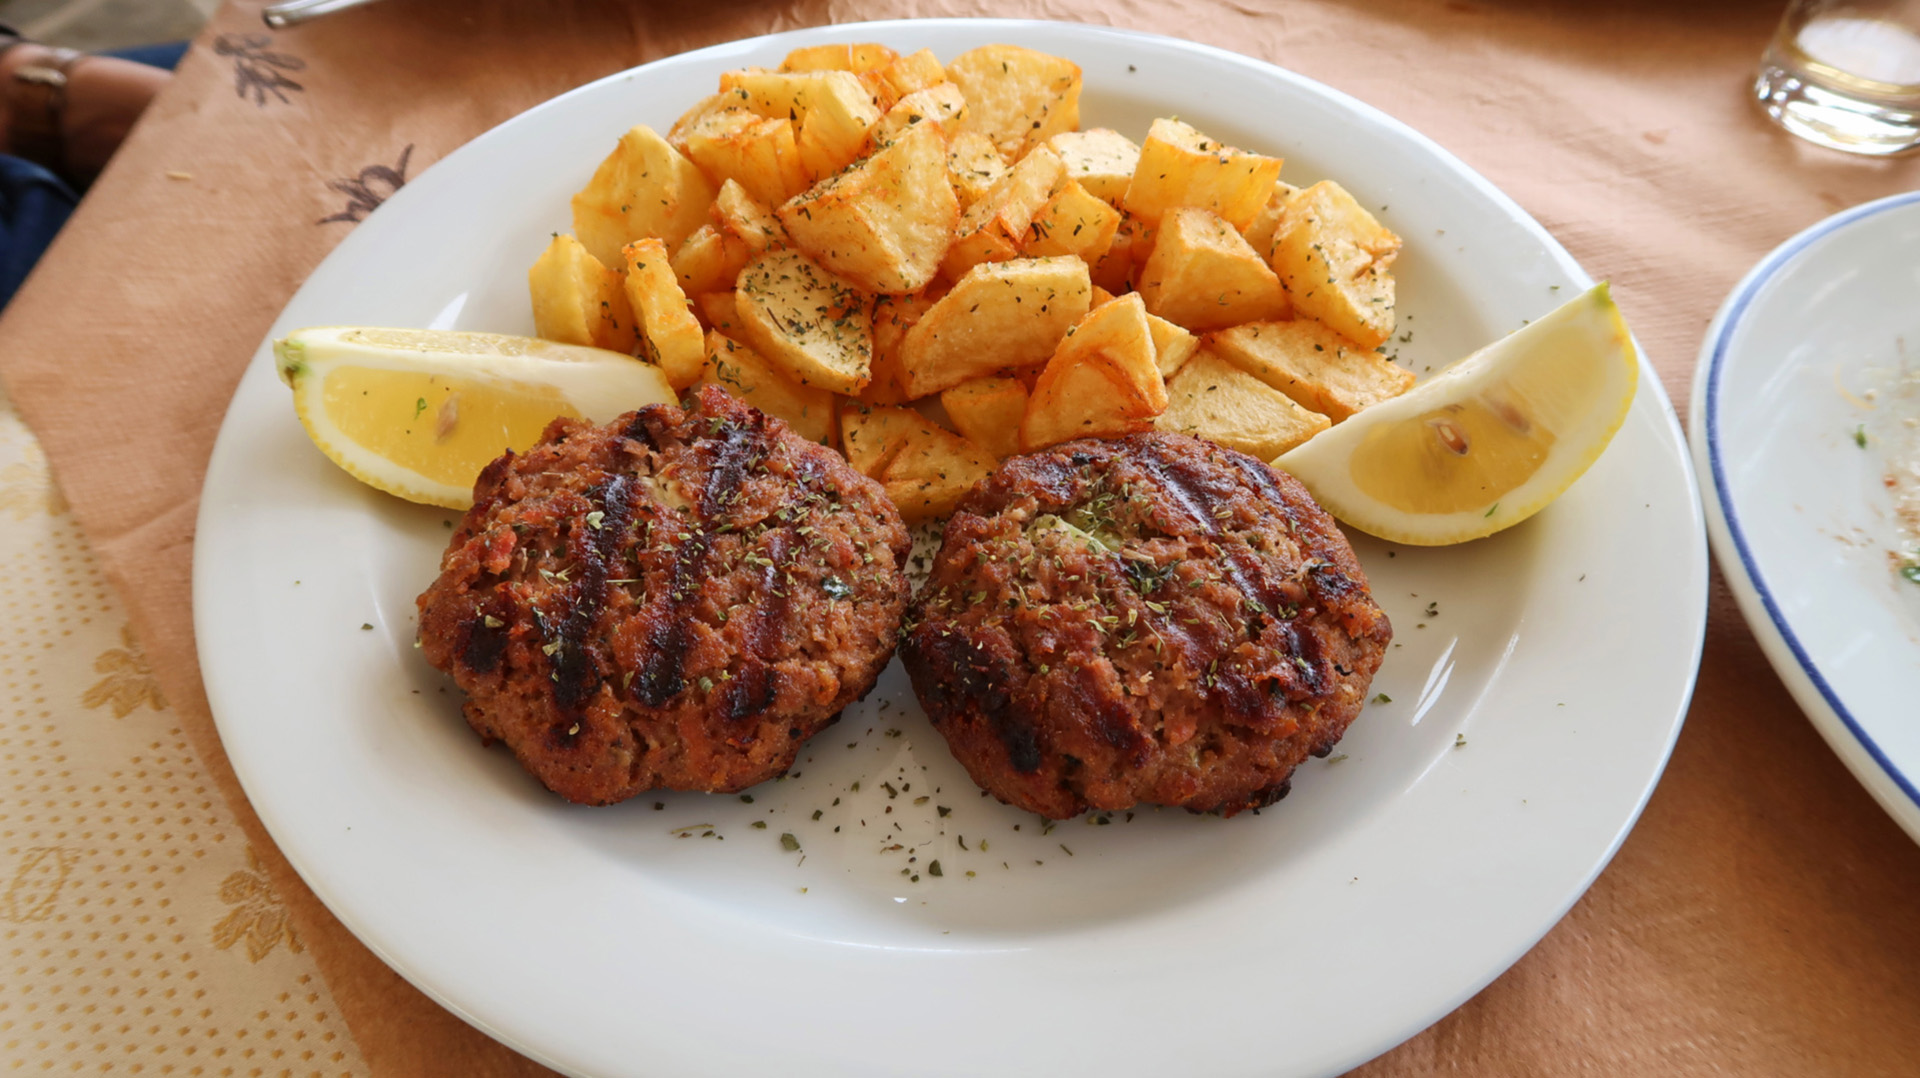 Sway the way andros chora restaurant pork patties2